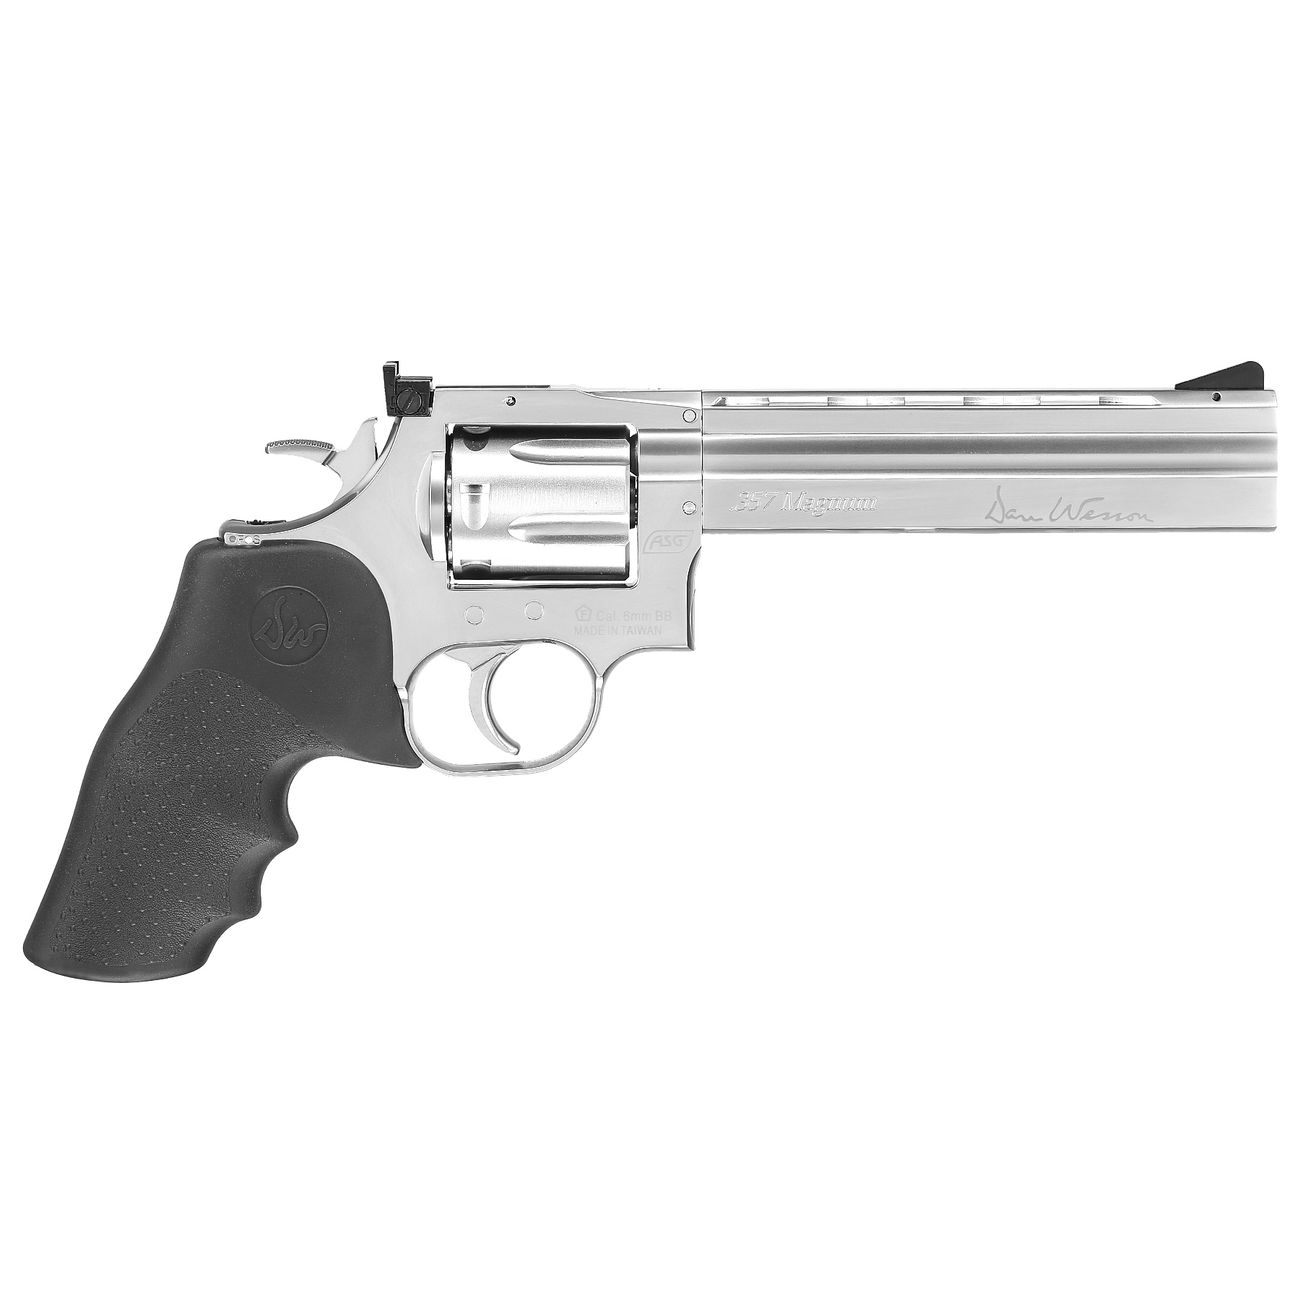 ASG Dan Wesson 715 6 Zoll Revolver Vollmetall CO2 6mm BB chrom Low Power Version 2